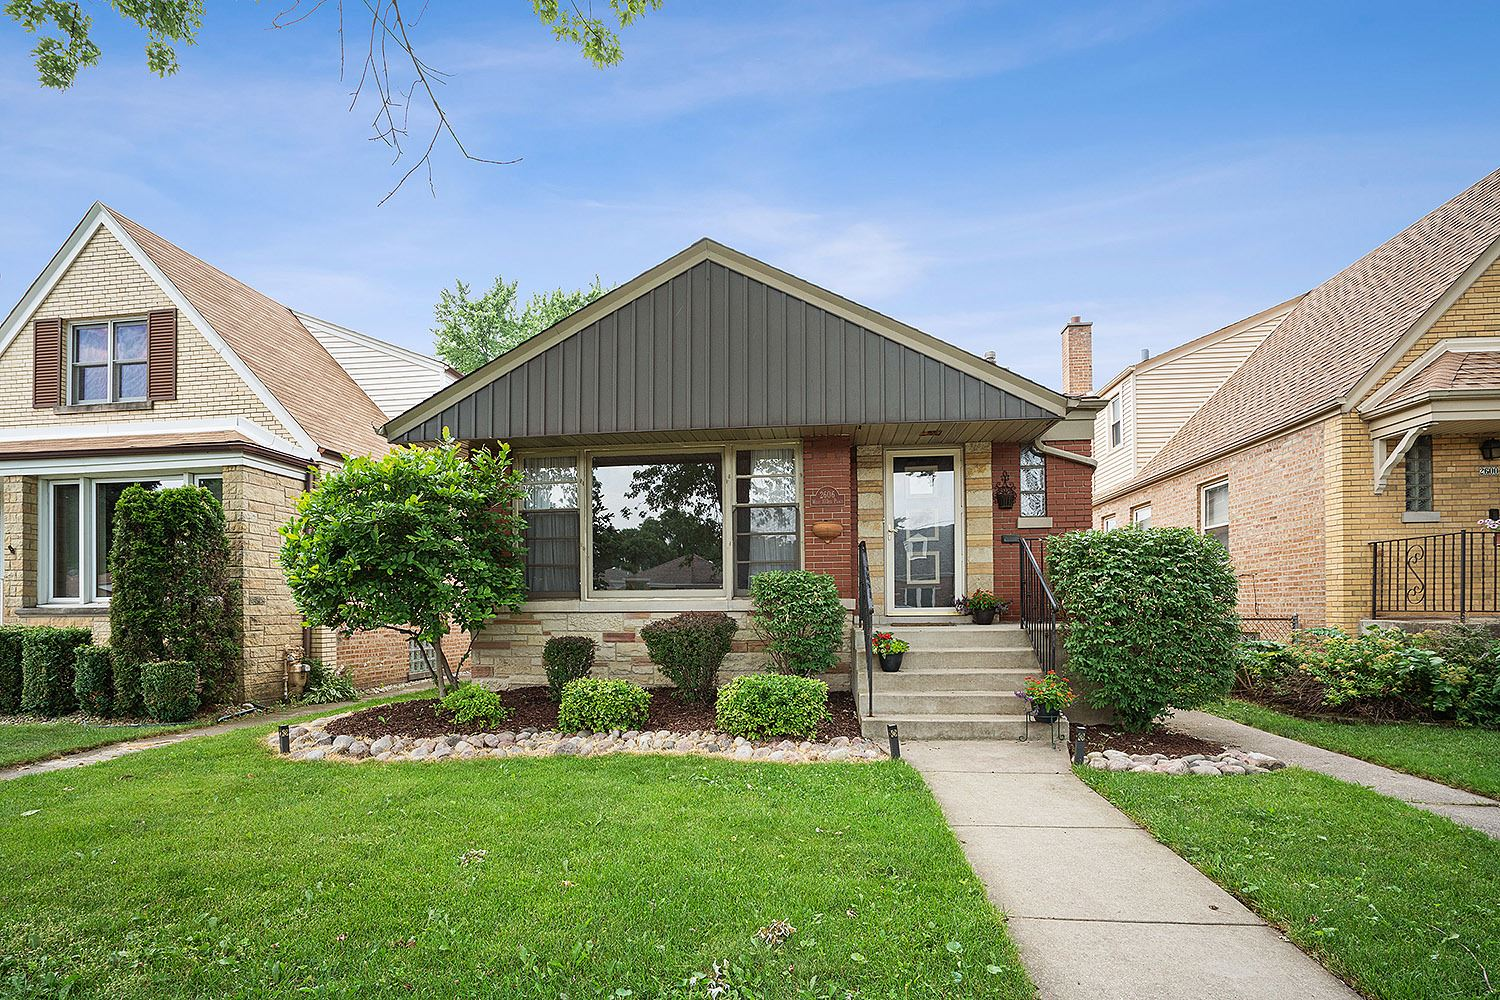 2606 W 103rd Place, Chicago, IL 60655 - #: 10775674